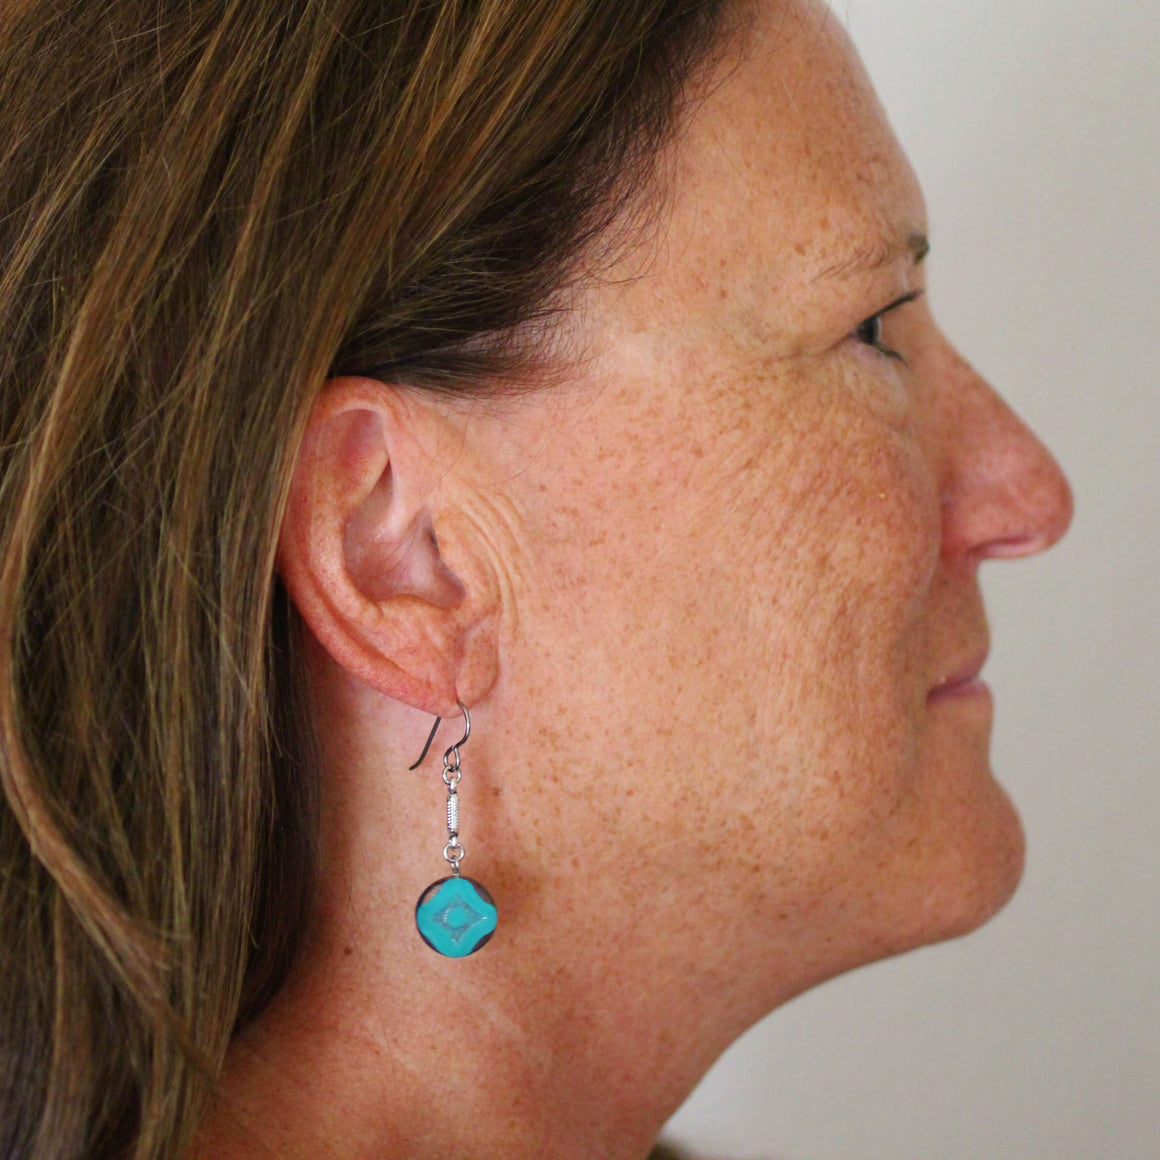 Teal Dangle Earrings for Sensitive Ears - Creative Jewelry by Marcia - Asymmetrical Jewelry - Timeless Jewelry